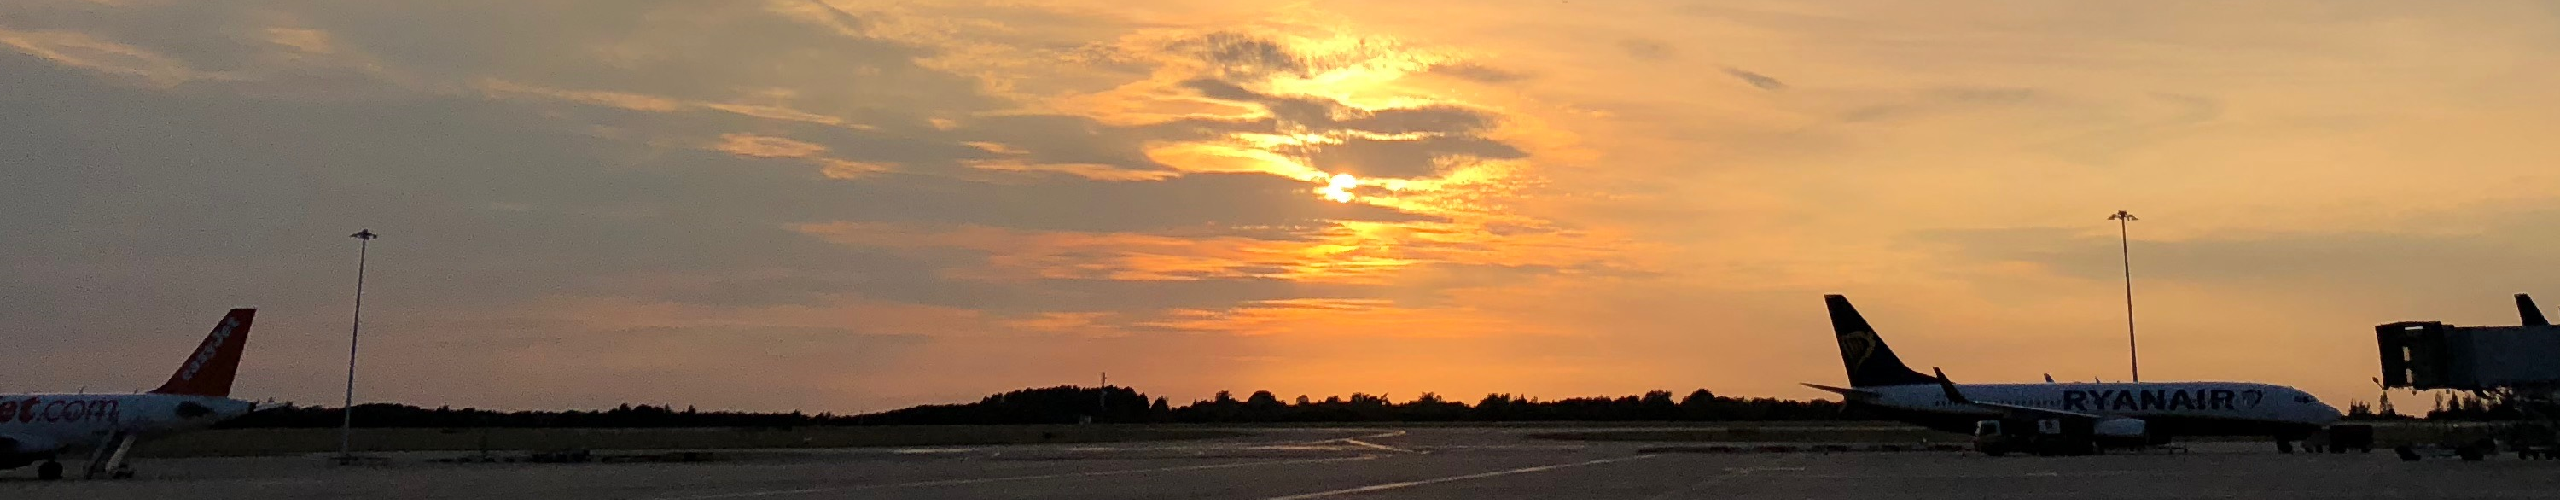 Stansted Airport background